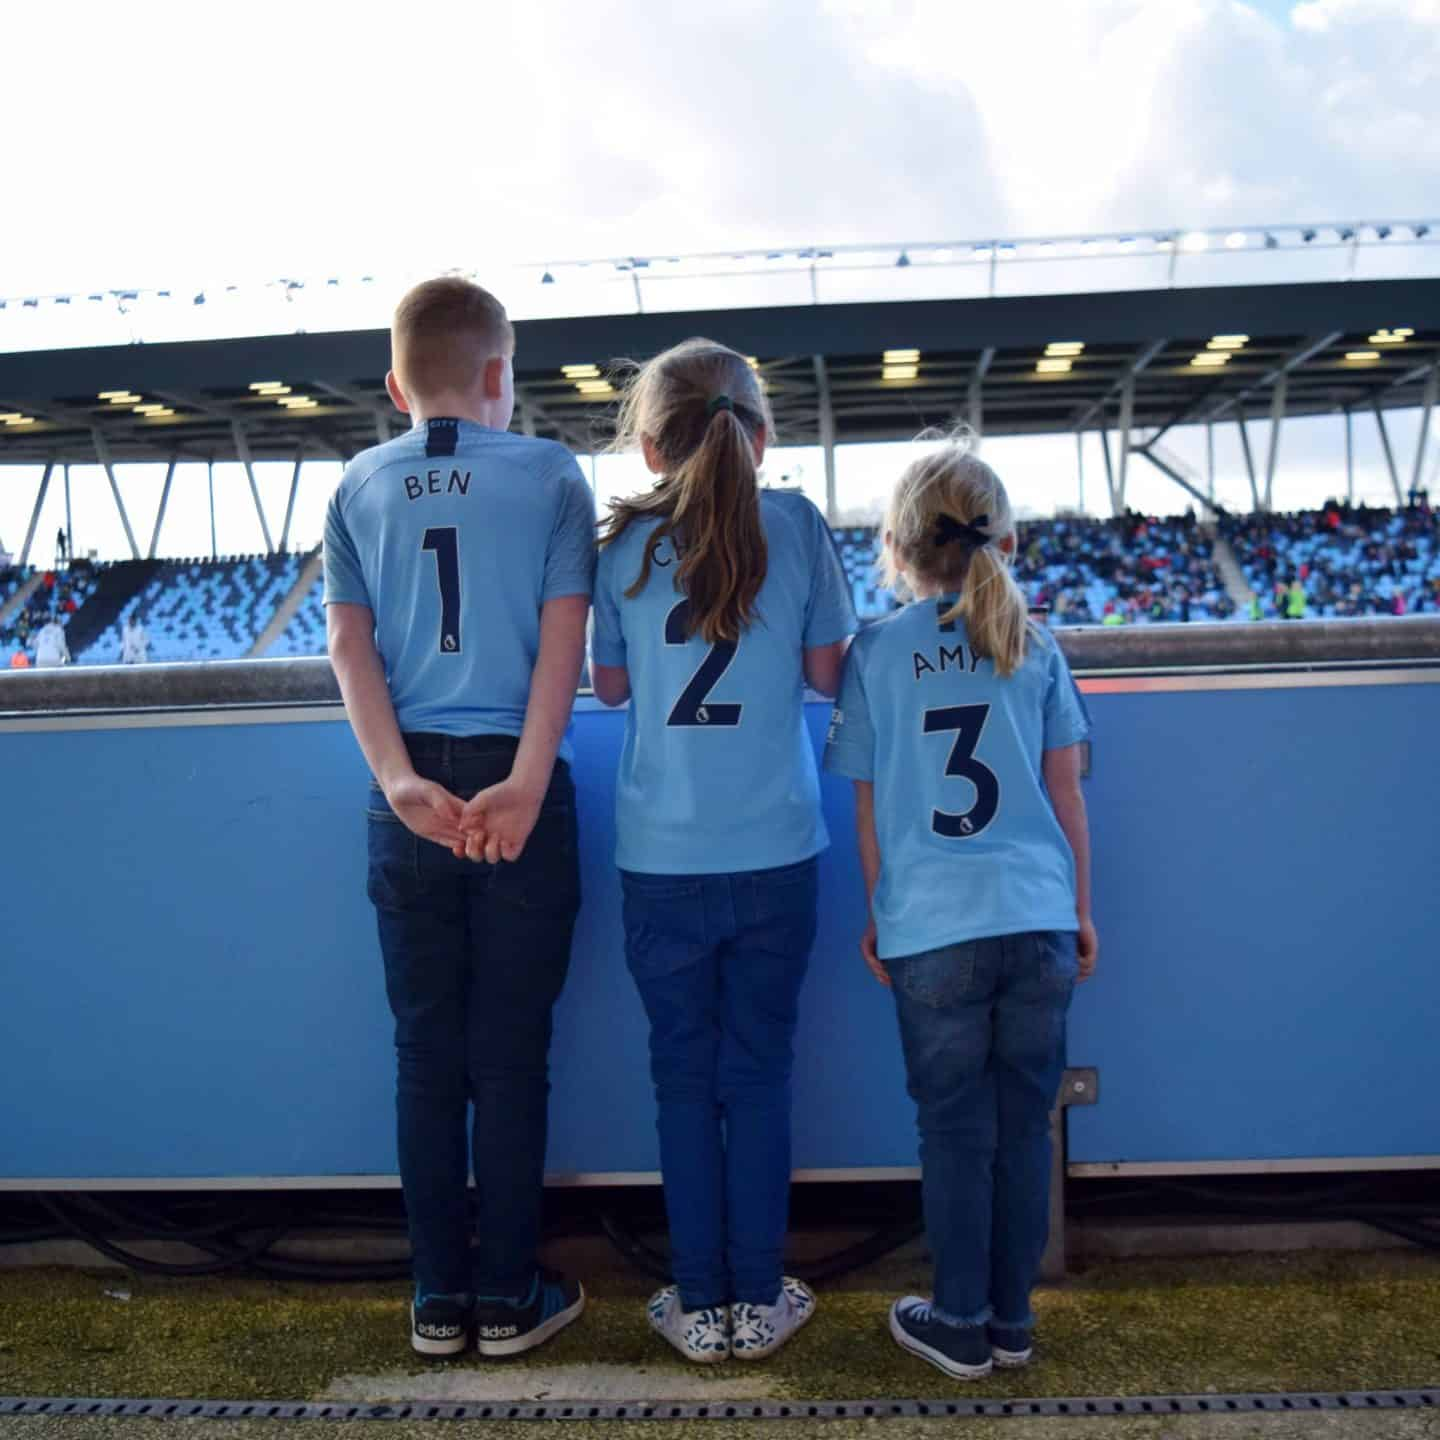 Siblings wearing Manchester City shirts.